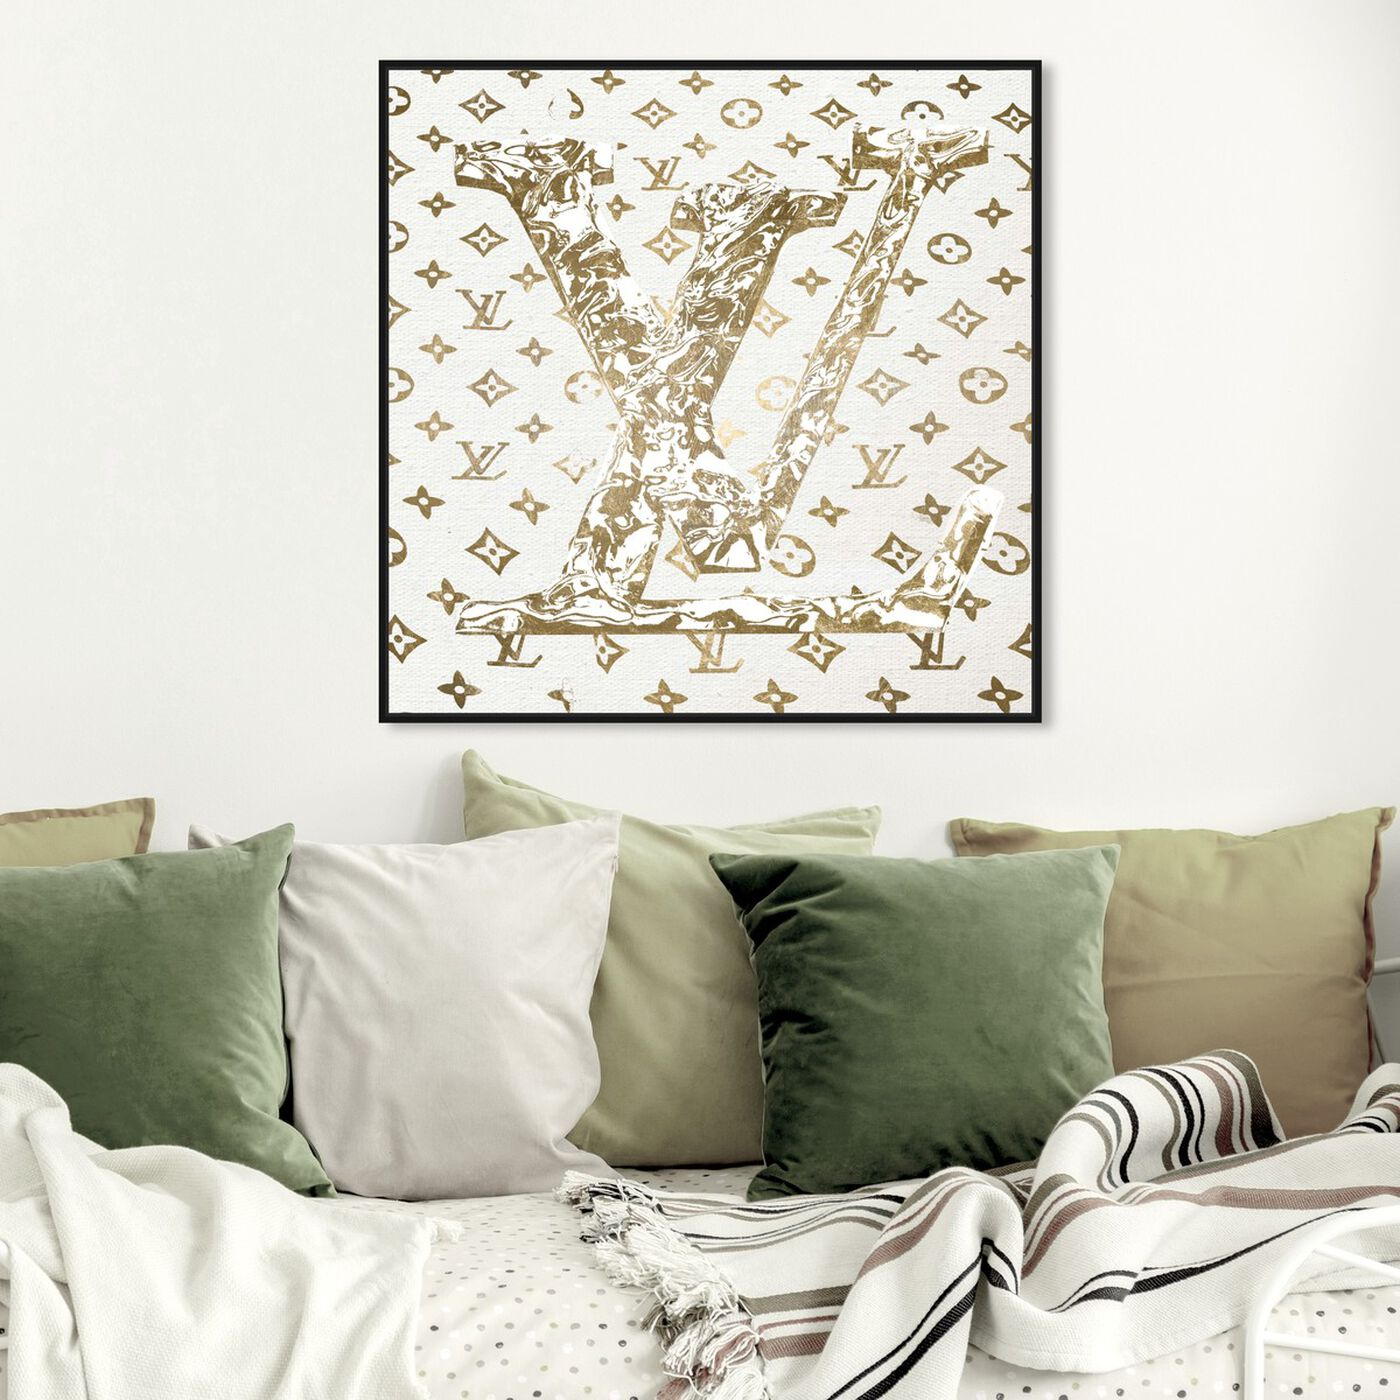 Hanging view of Paris Statement In Style featuring fashion and glam and road signs art.